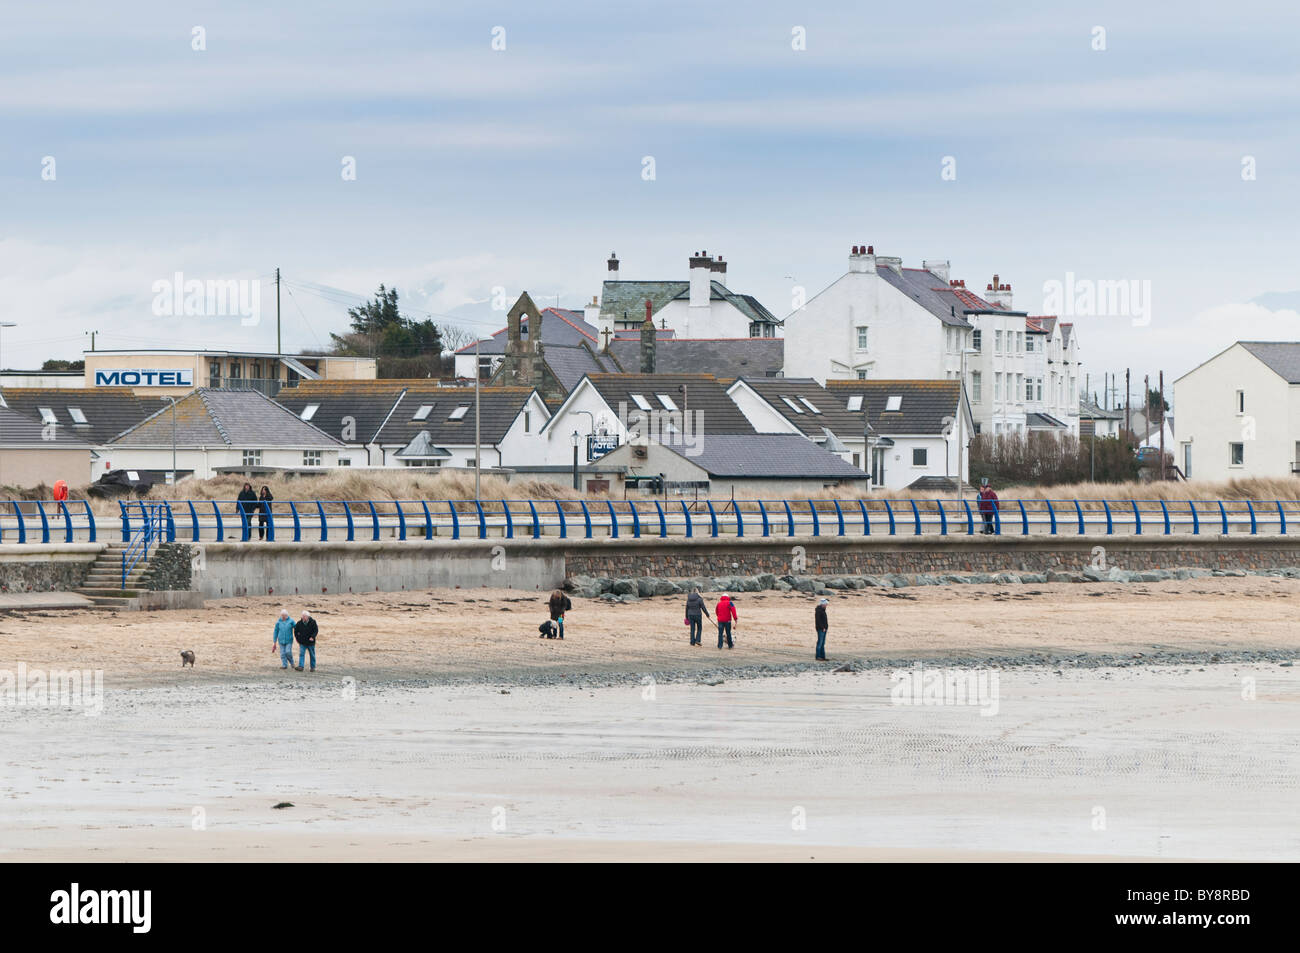 Trearddur Bay, Anglesey, North Wales UK - Stock Image